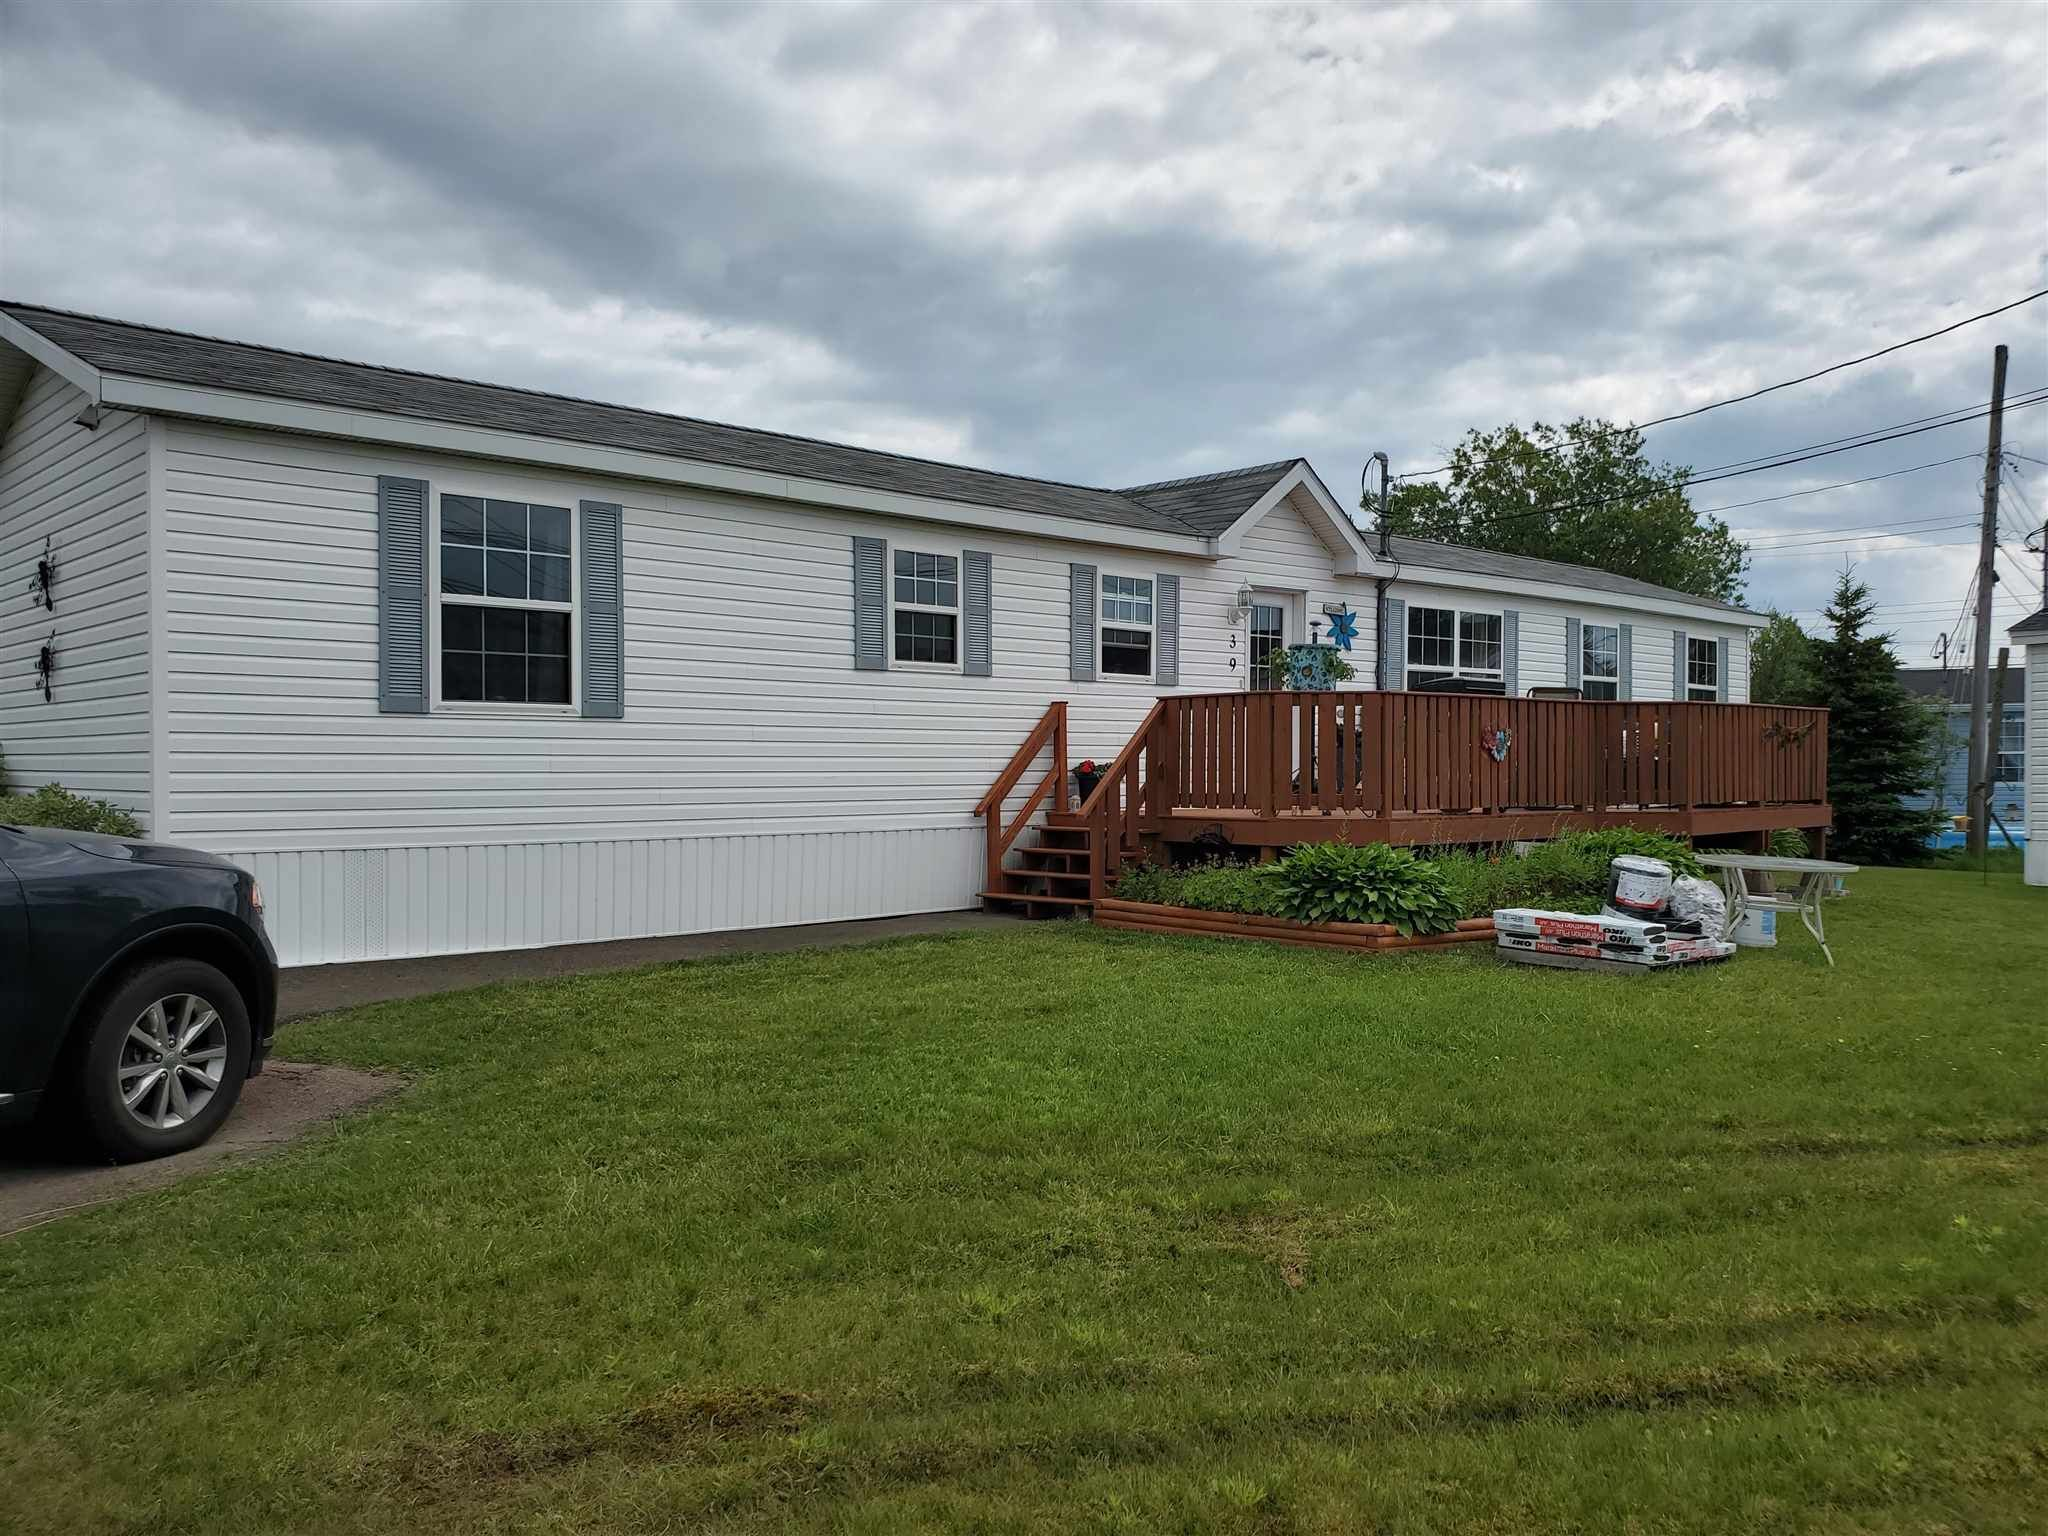 Main Photo: 39 Rosewood Drive in Amherst: 101-Amherst,Brookdale,Warren Residential for sale (Northern Region)  : MLS®# 202116608